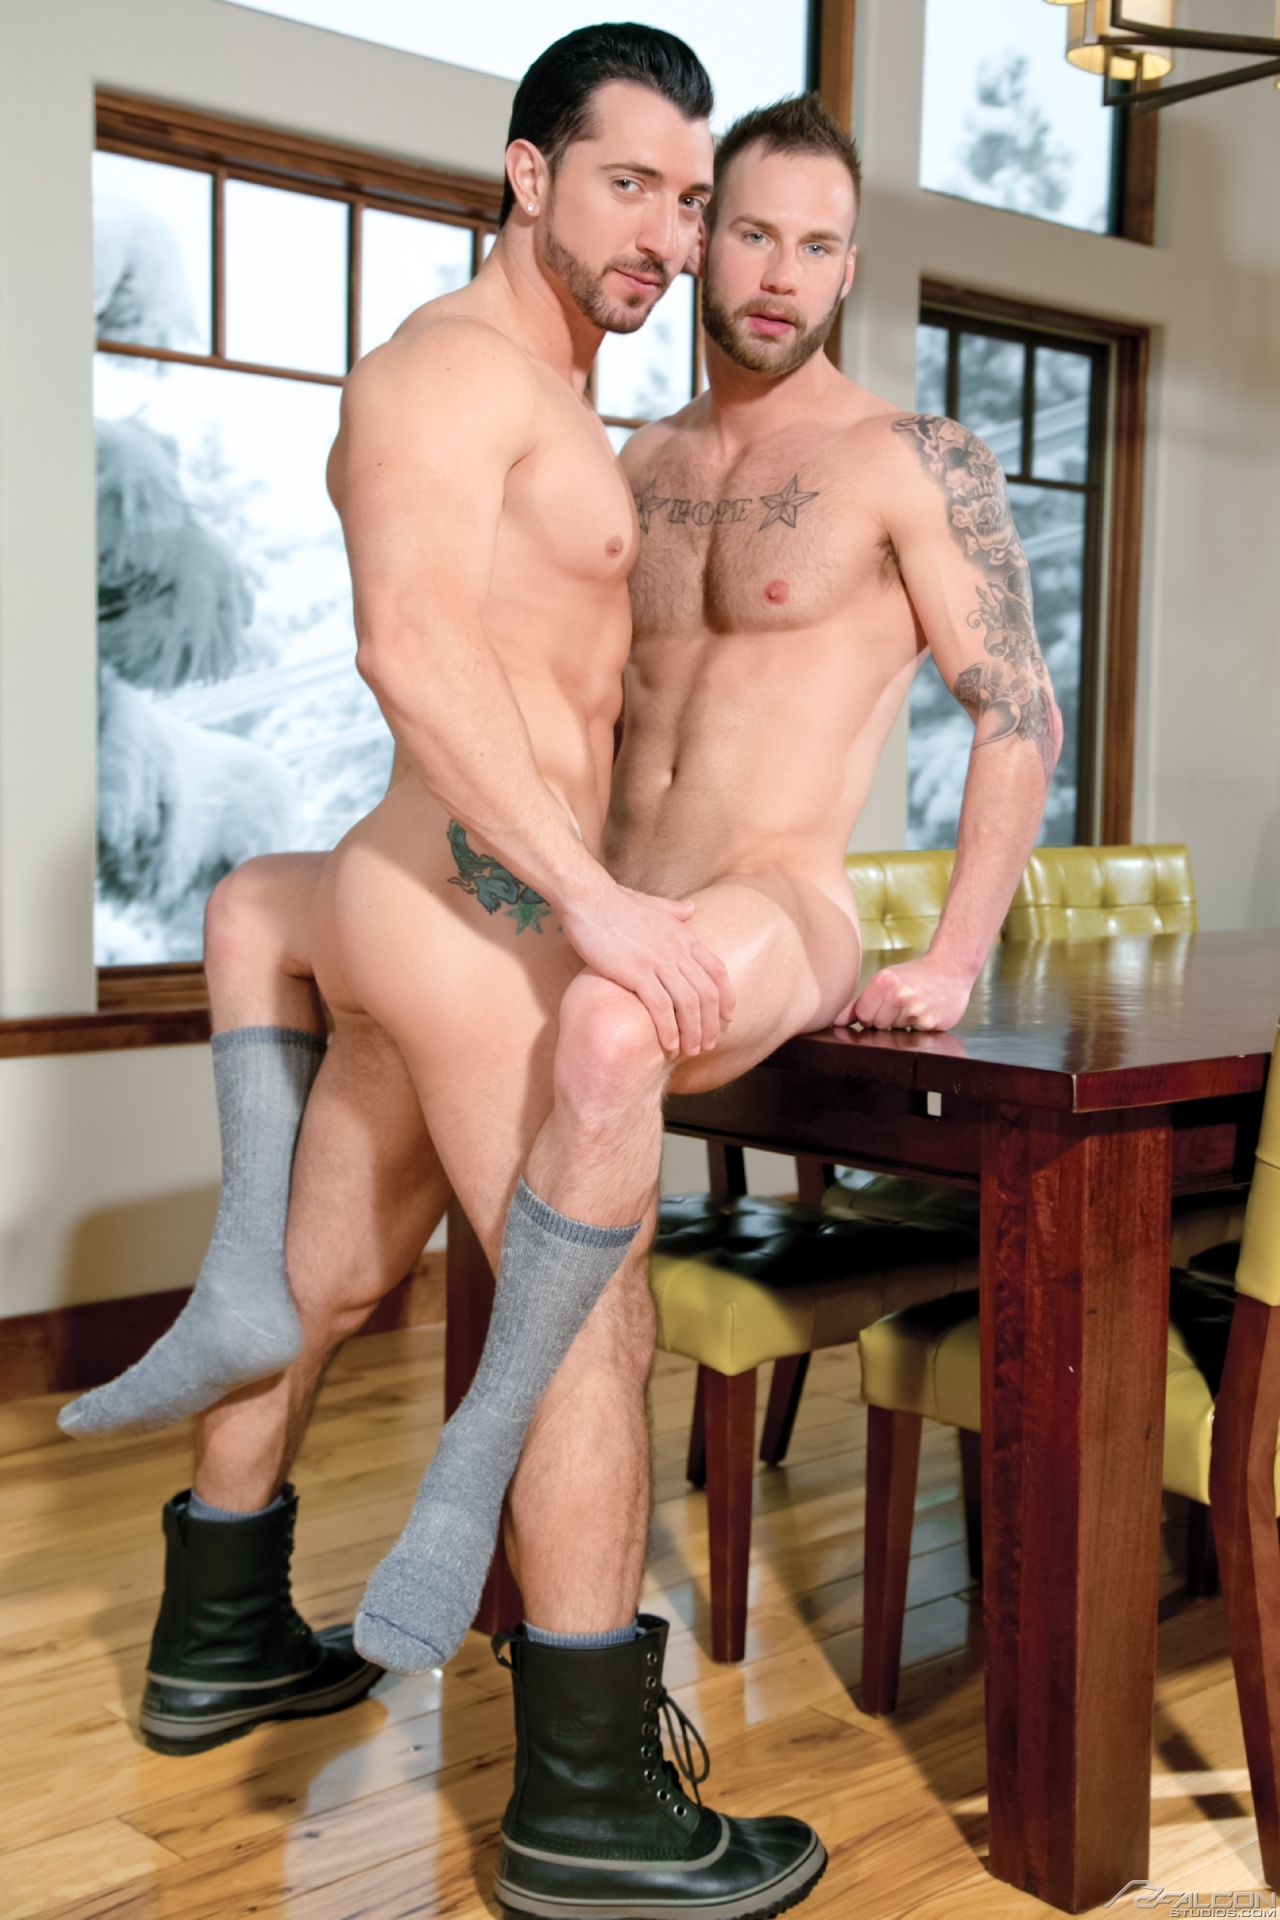 Chris Bines bottoms for Jimmy Durano in a scene from the gay porn film Alpine Wood by Falcon Studios.